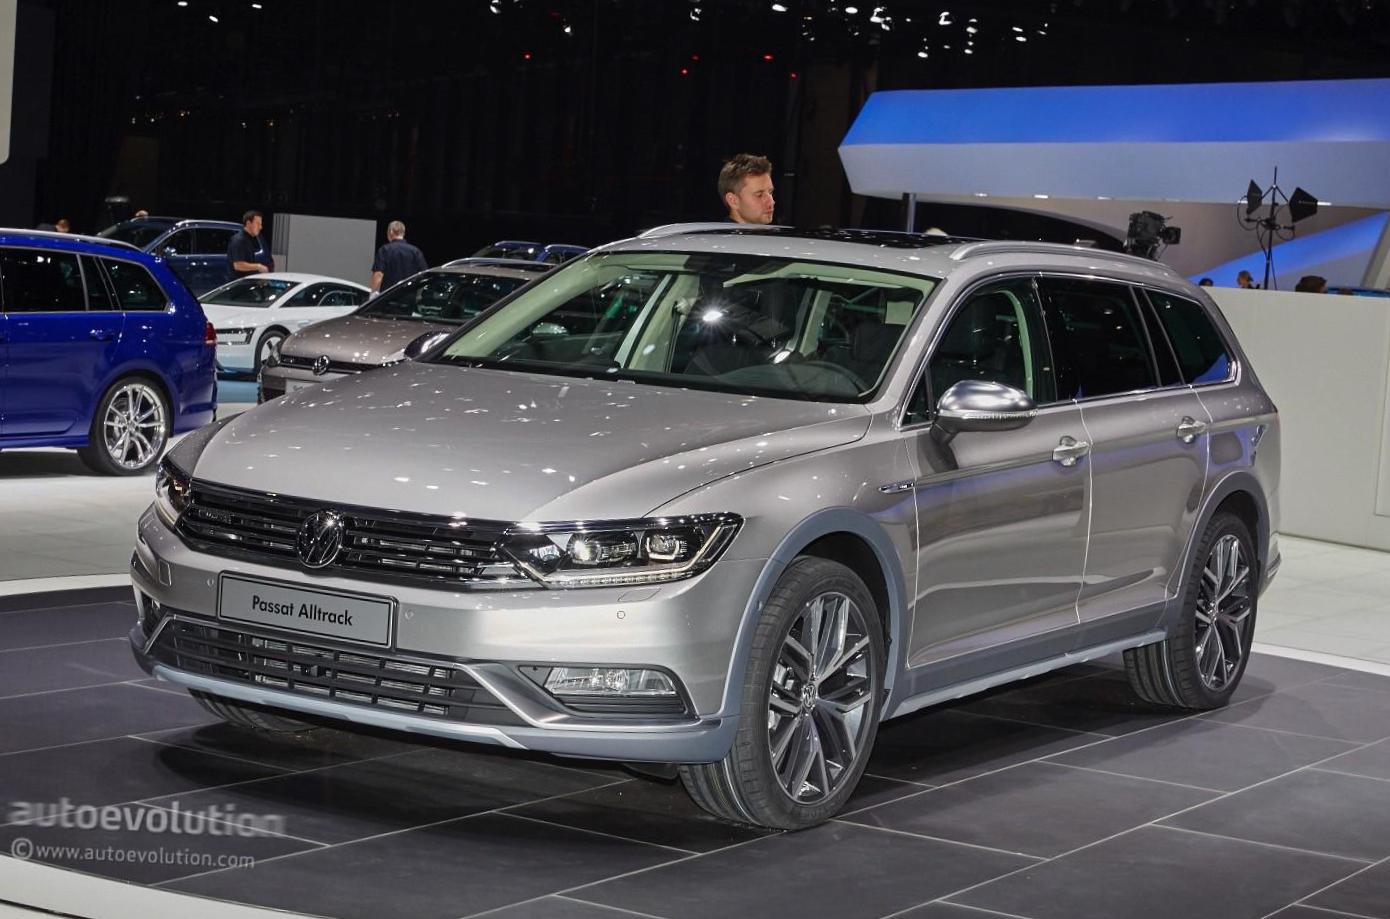 volkswagen passat alltrack photos and specs photo volkswagen passat alltrack tuning and 25. Black Bedroom Furniture Sets. Home Design Ideas